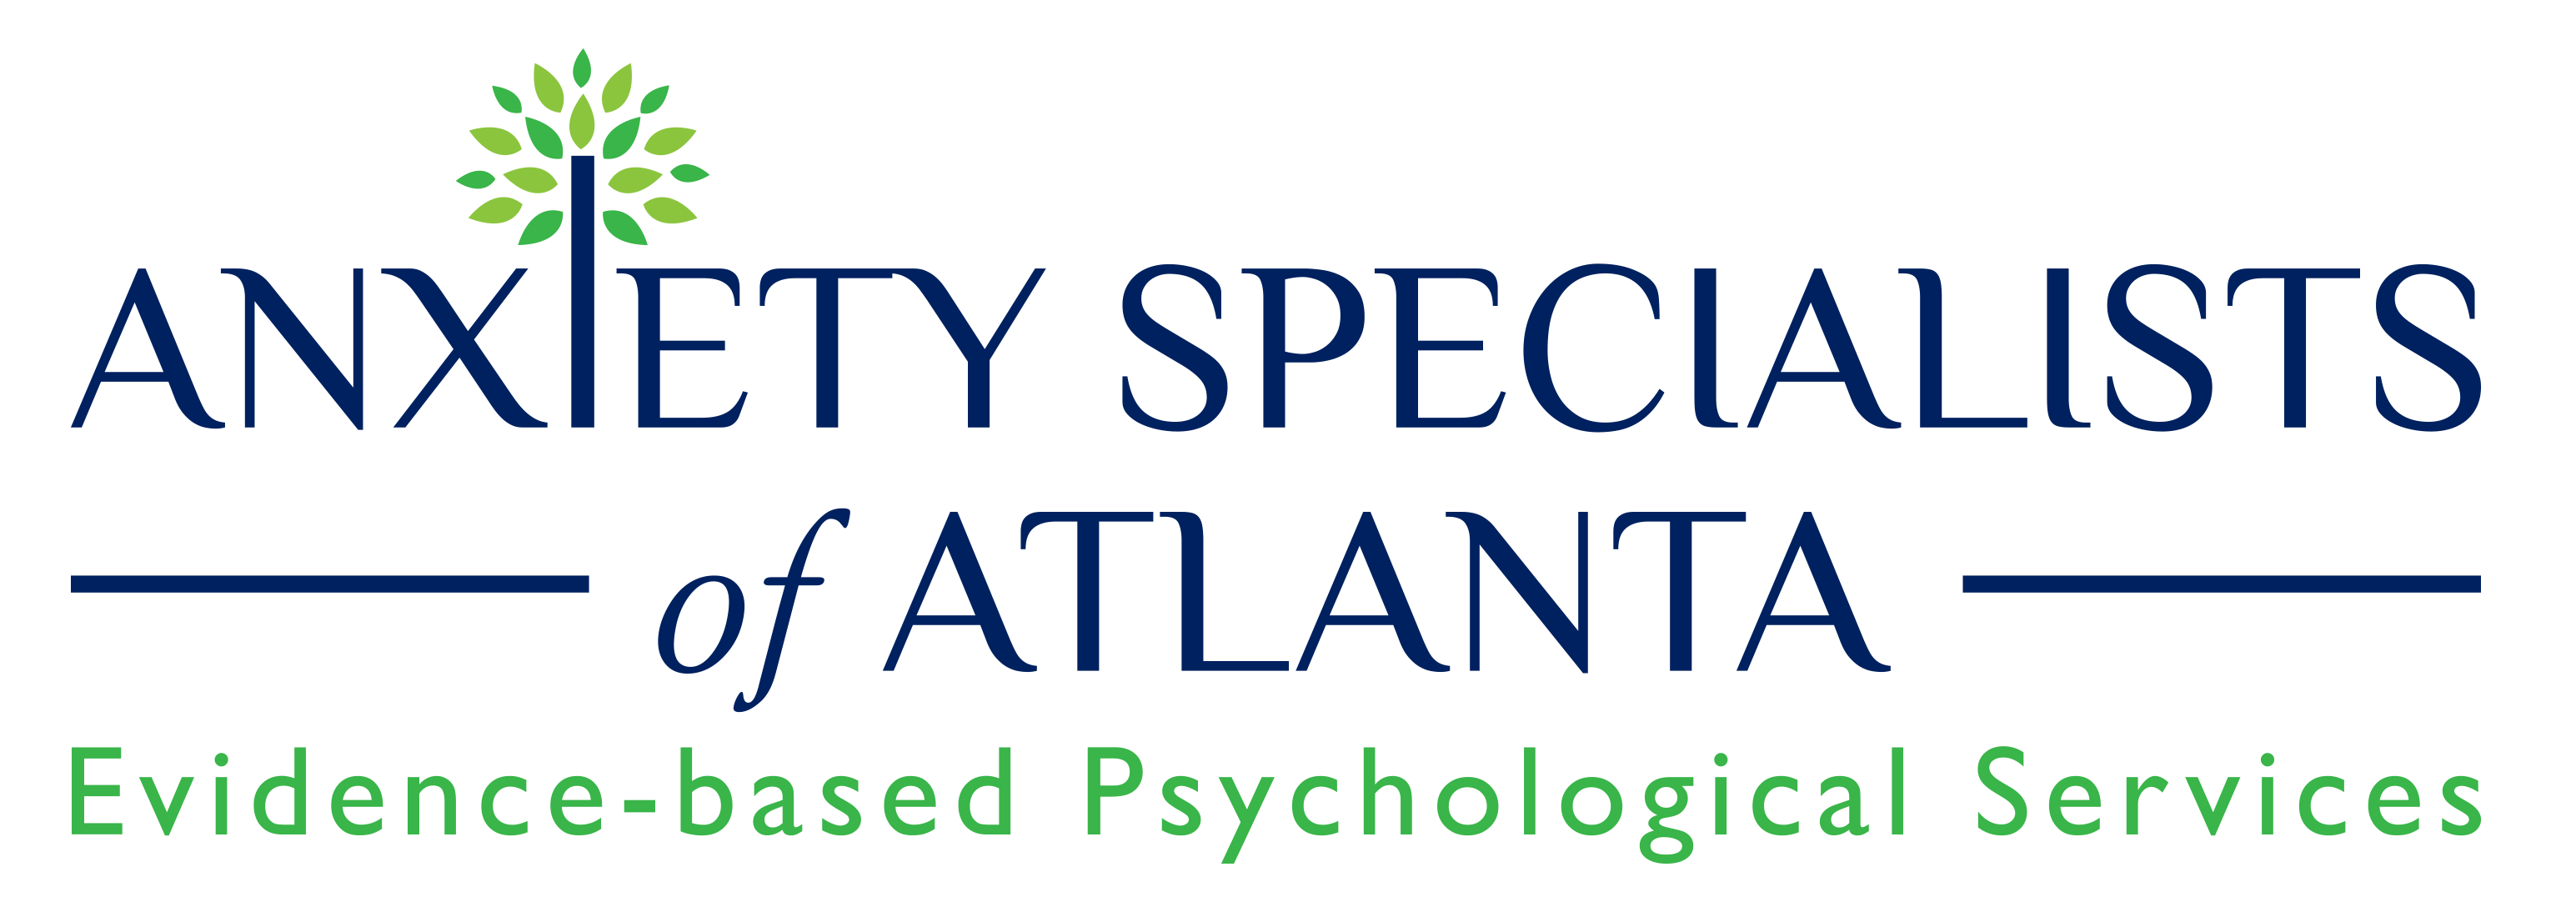 Anxiety Specialists of Atlanta